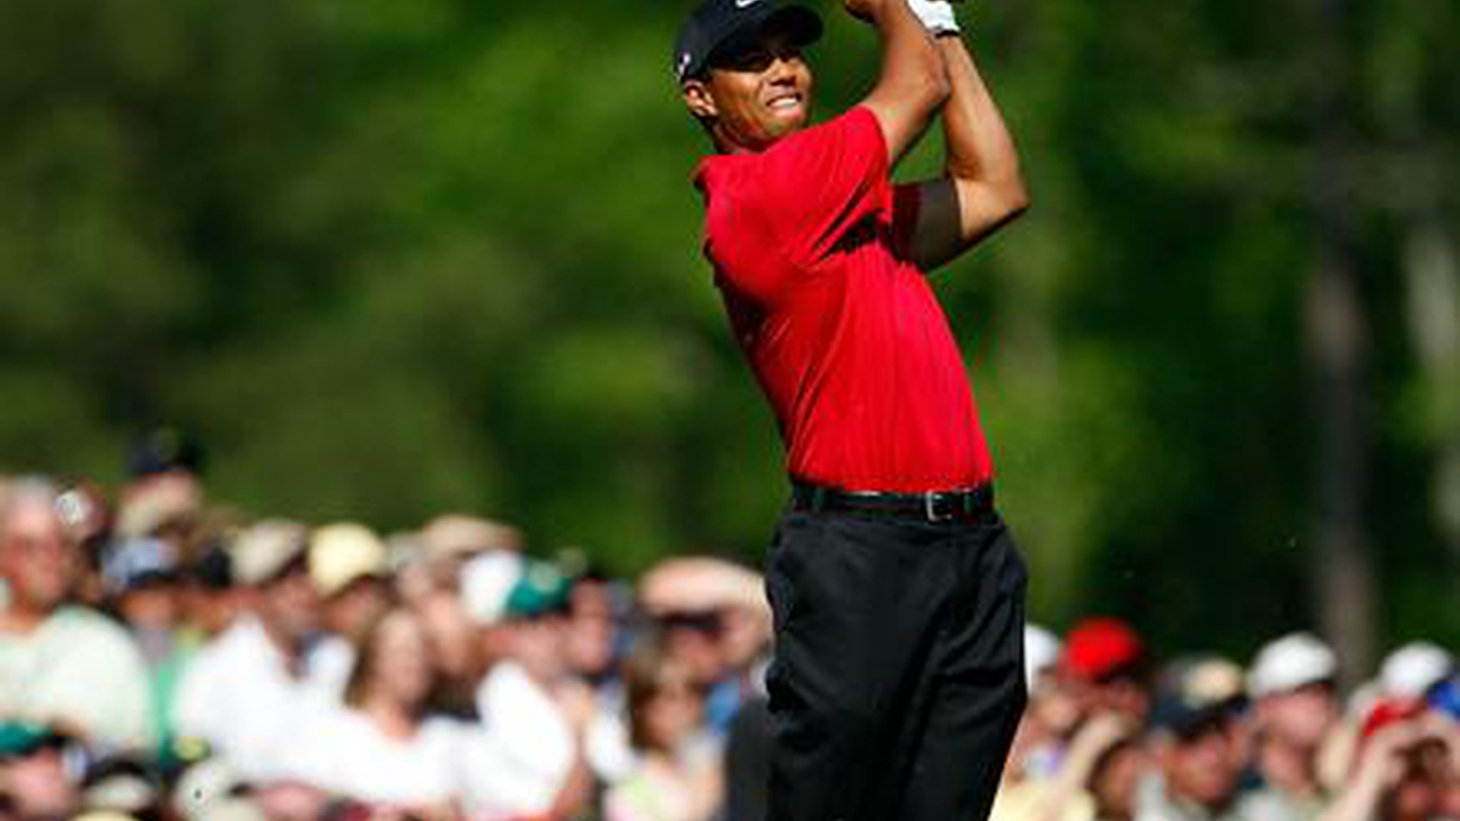 After five months of seclusion, Tiger's comeback at the famous Master's in three weeks is predicted to draw as many viewers as President Obama's inauguration. Augusta, Georgia, come April 7, won't merely be the site of one of golf's four Major events. Rabid curiosity is going to draw the public at large to watch the protagonist of America's biggest story in huge numbers. The Master's two broadcasters, ESPN the first two days, Thursday and Friday, and CBS the weekend, assuming Tiger makes the cut and plays the weekend, are licking their chops at the certainty of ratings hitting historic highs. But I'm sure there's a quandary there as well....